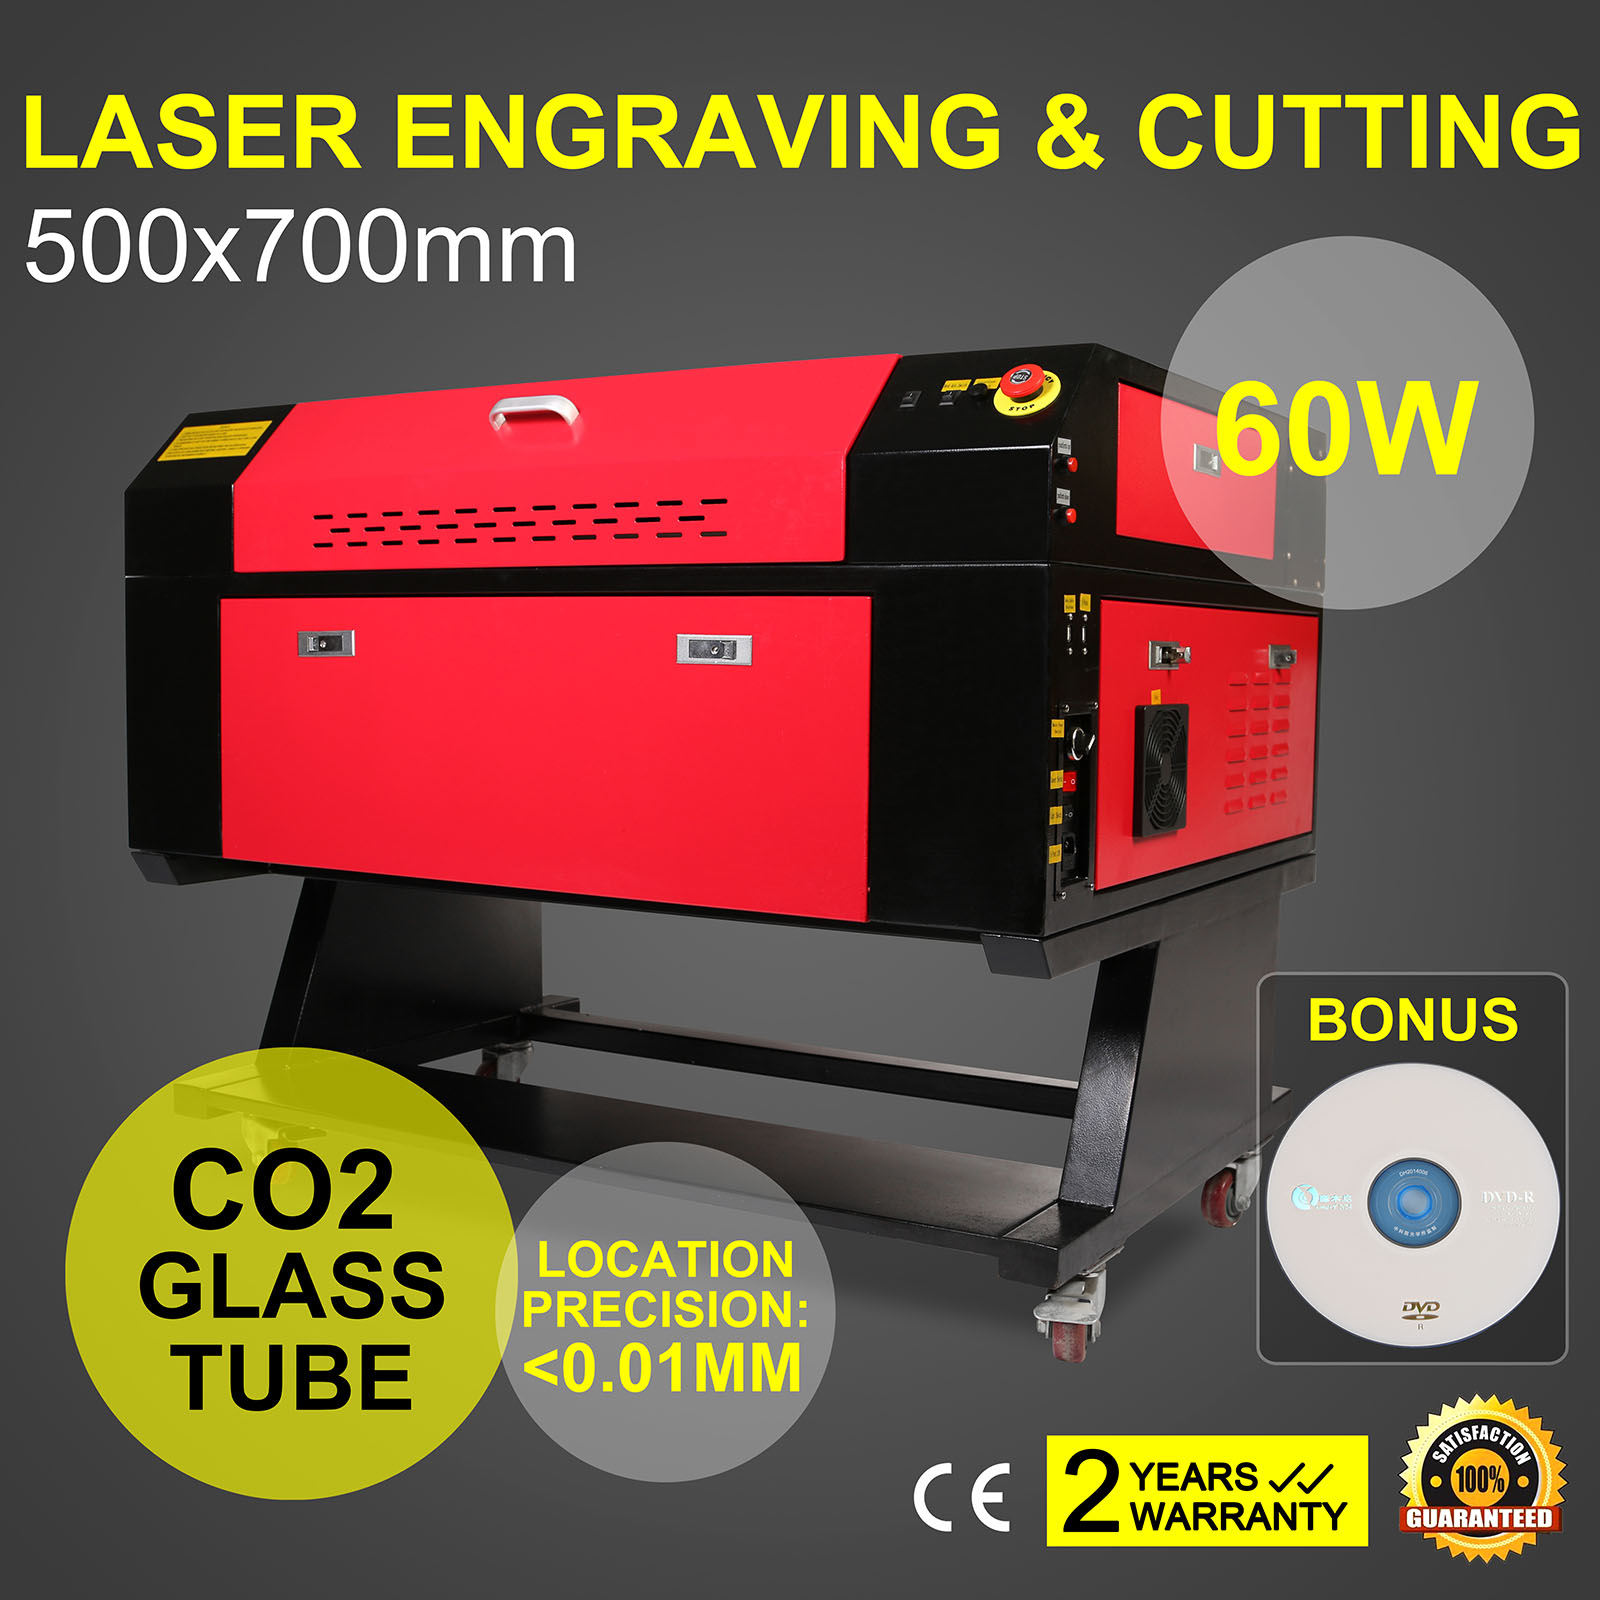 CO2-Usb-Laser-Engraving-Cutting-Machine-Engraver-Cutter-Air-Assist-Carving thumbnail 36